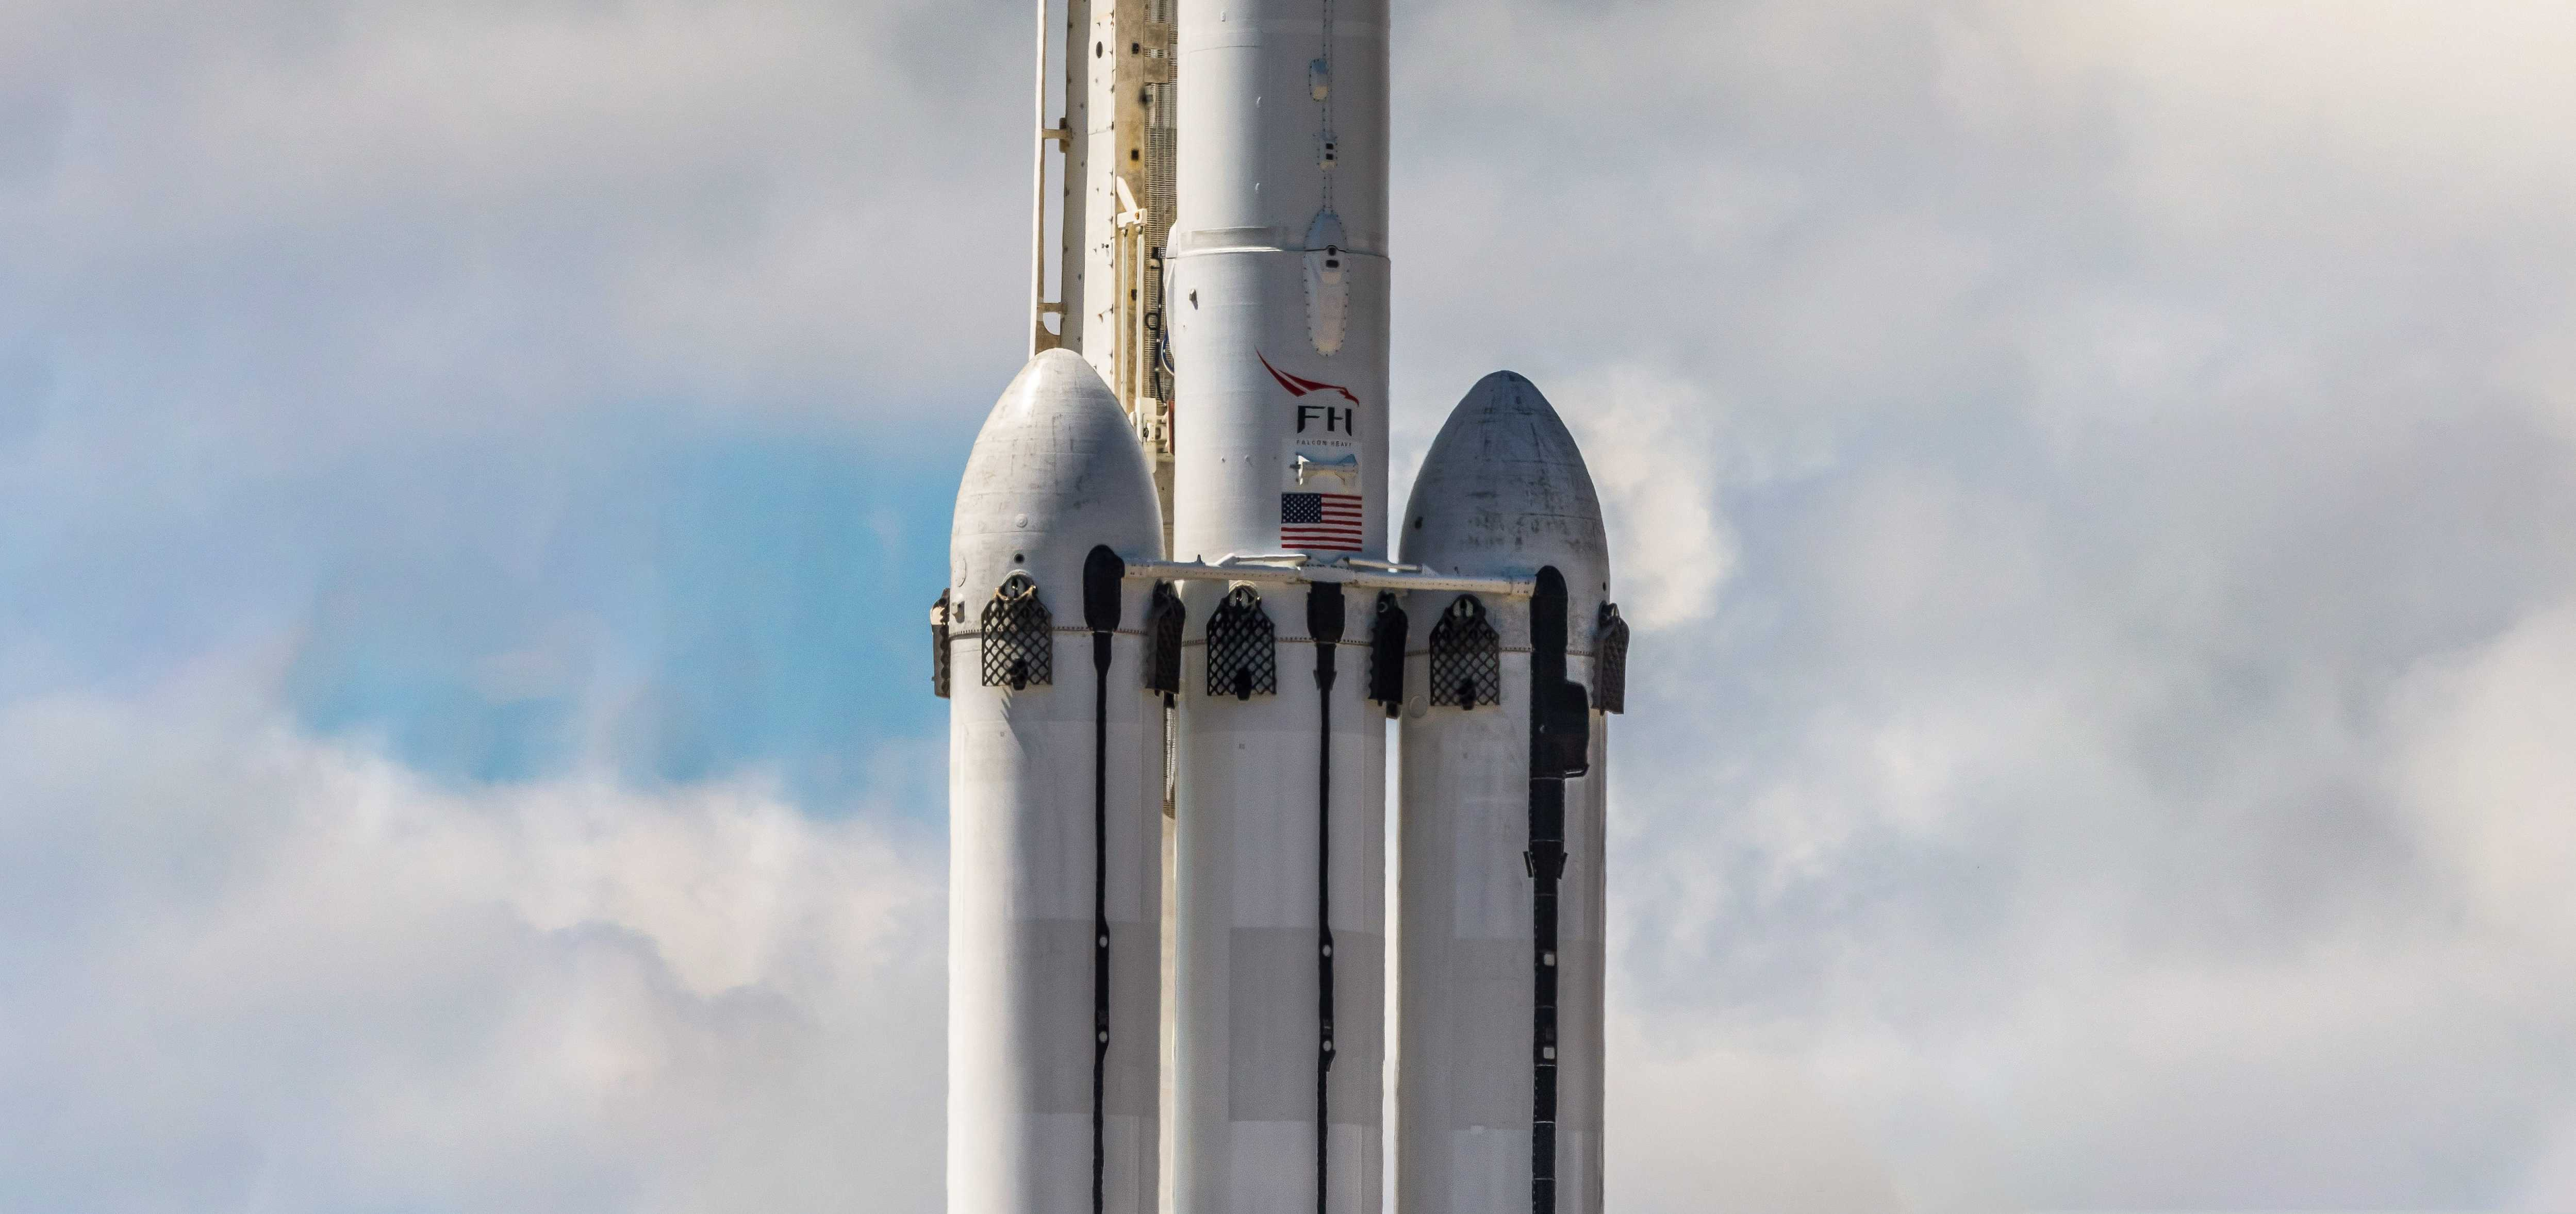 Falcon Heavy Flight 2 prelaunch 041119 (Pauline Acalin) clouds pano 1 crop 2 (c)